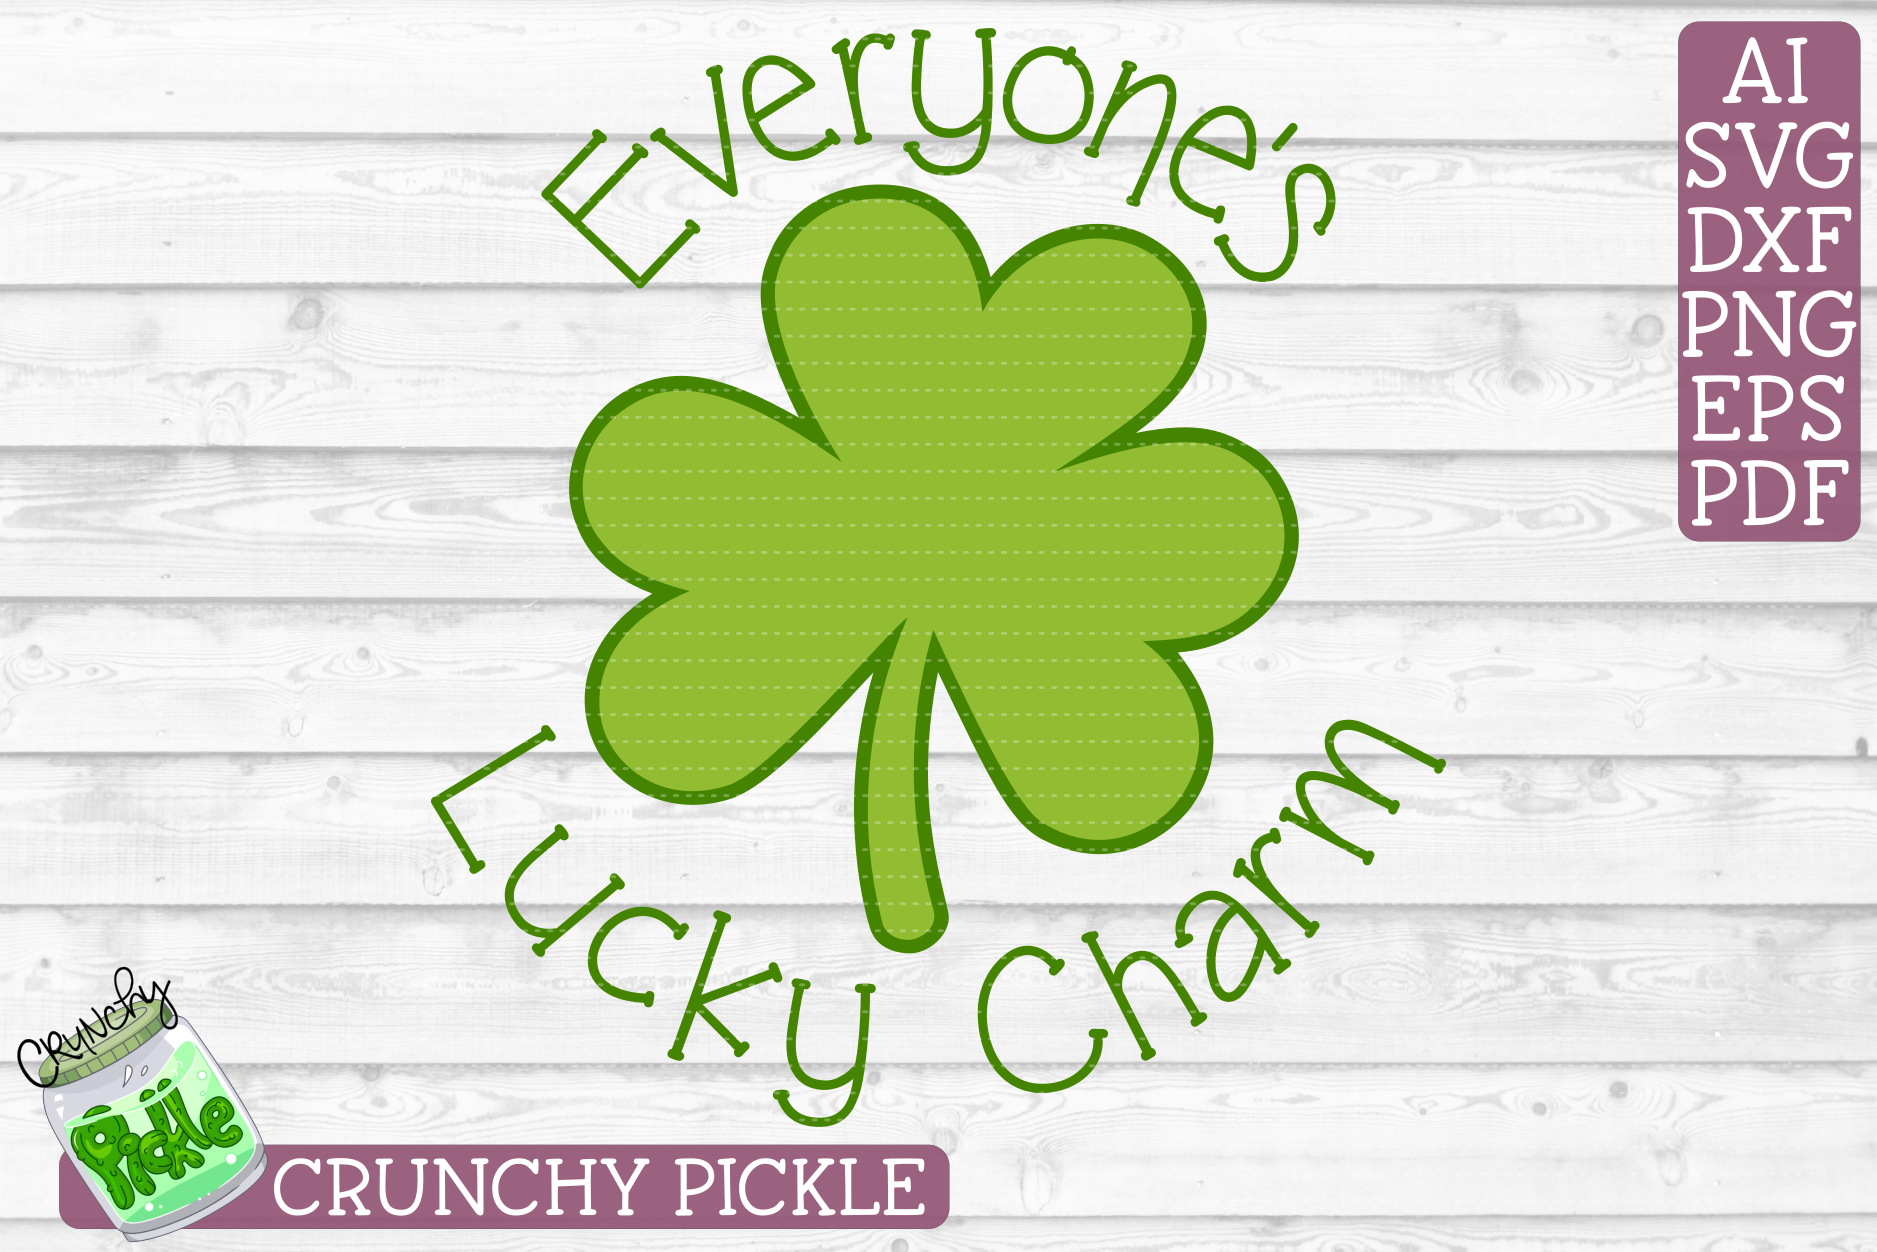 Everyone's Lucky Charm - St Patrick's Day SVG File example image 2